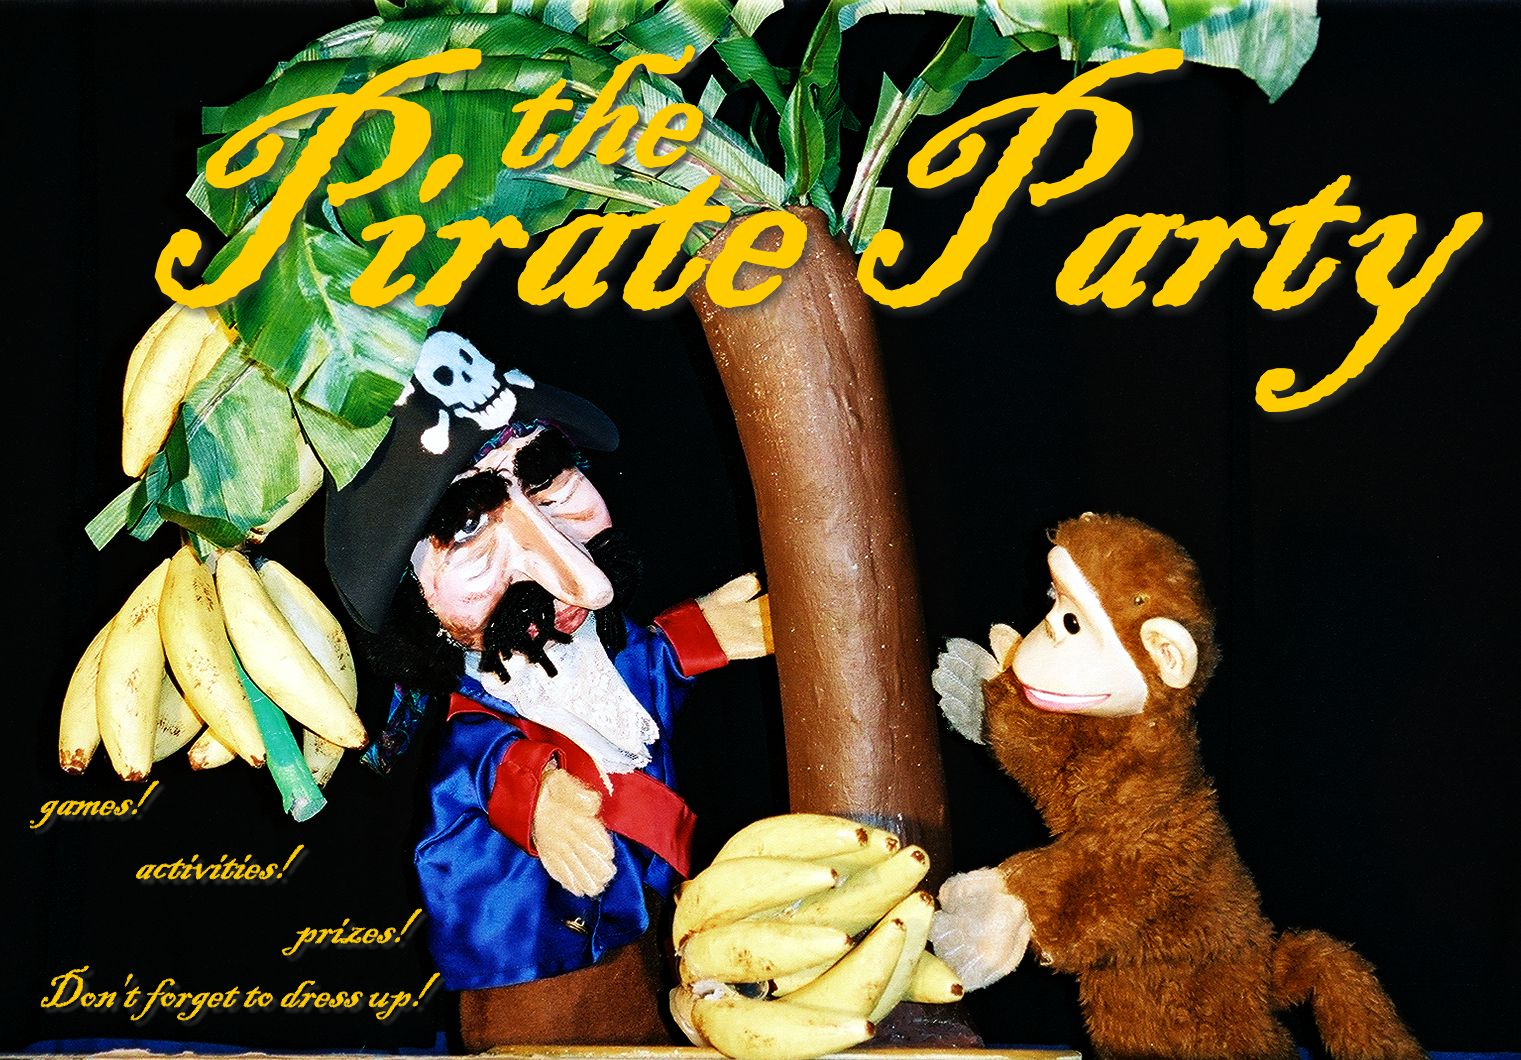 The Pirate Party!